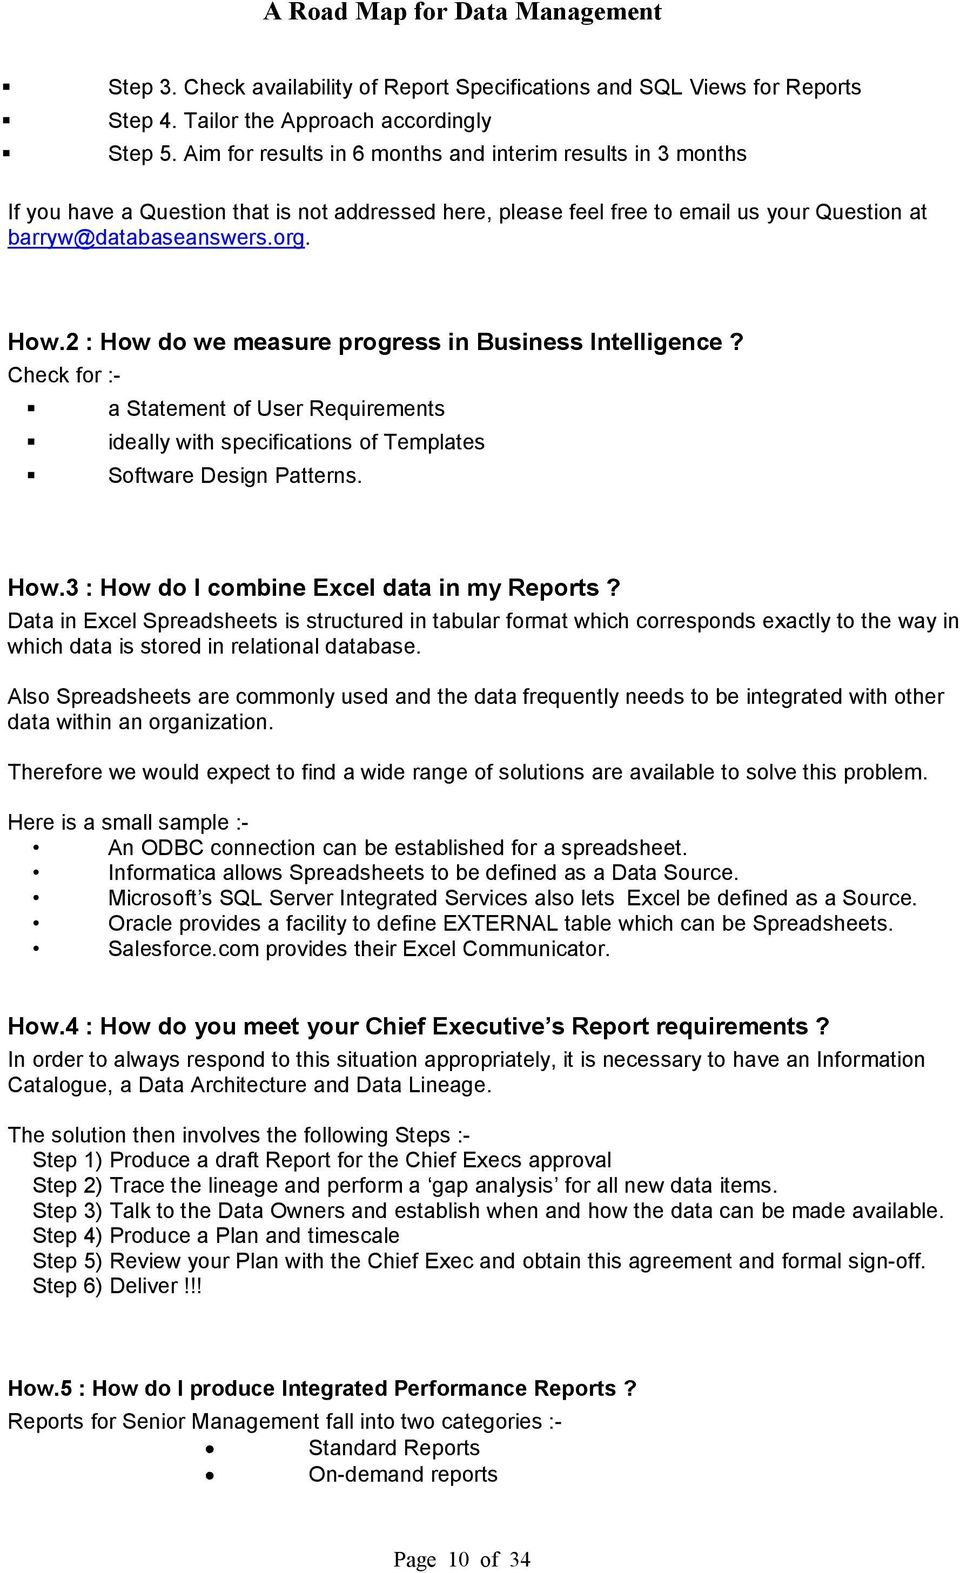 2 : How do we measure progress in Business Intelligence? Check for :- a Statement of User Requirements ideally with specifications of Templates Software Design Patterns. How.3 : How do I combine Excel data in my Reports?